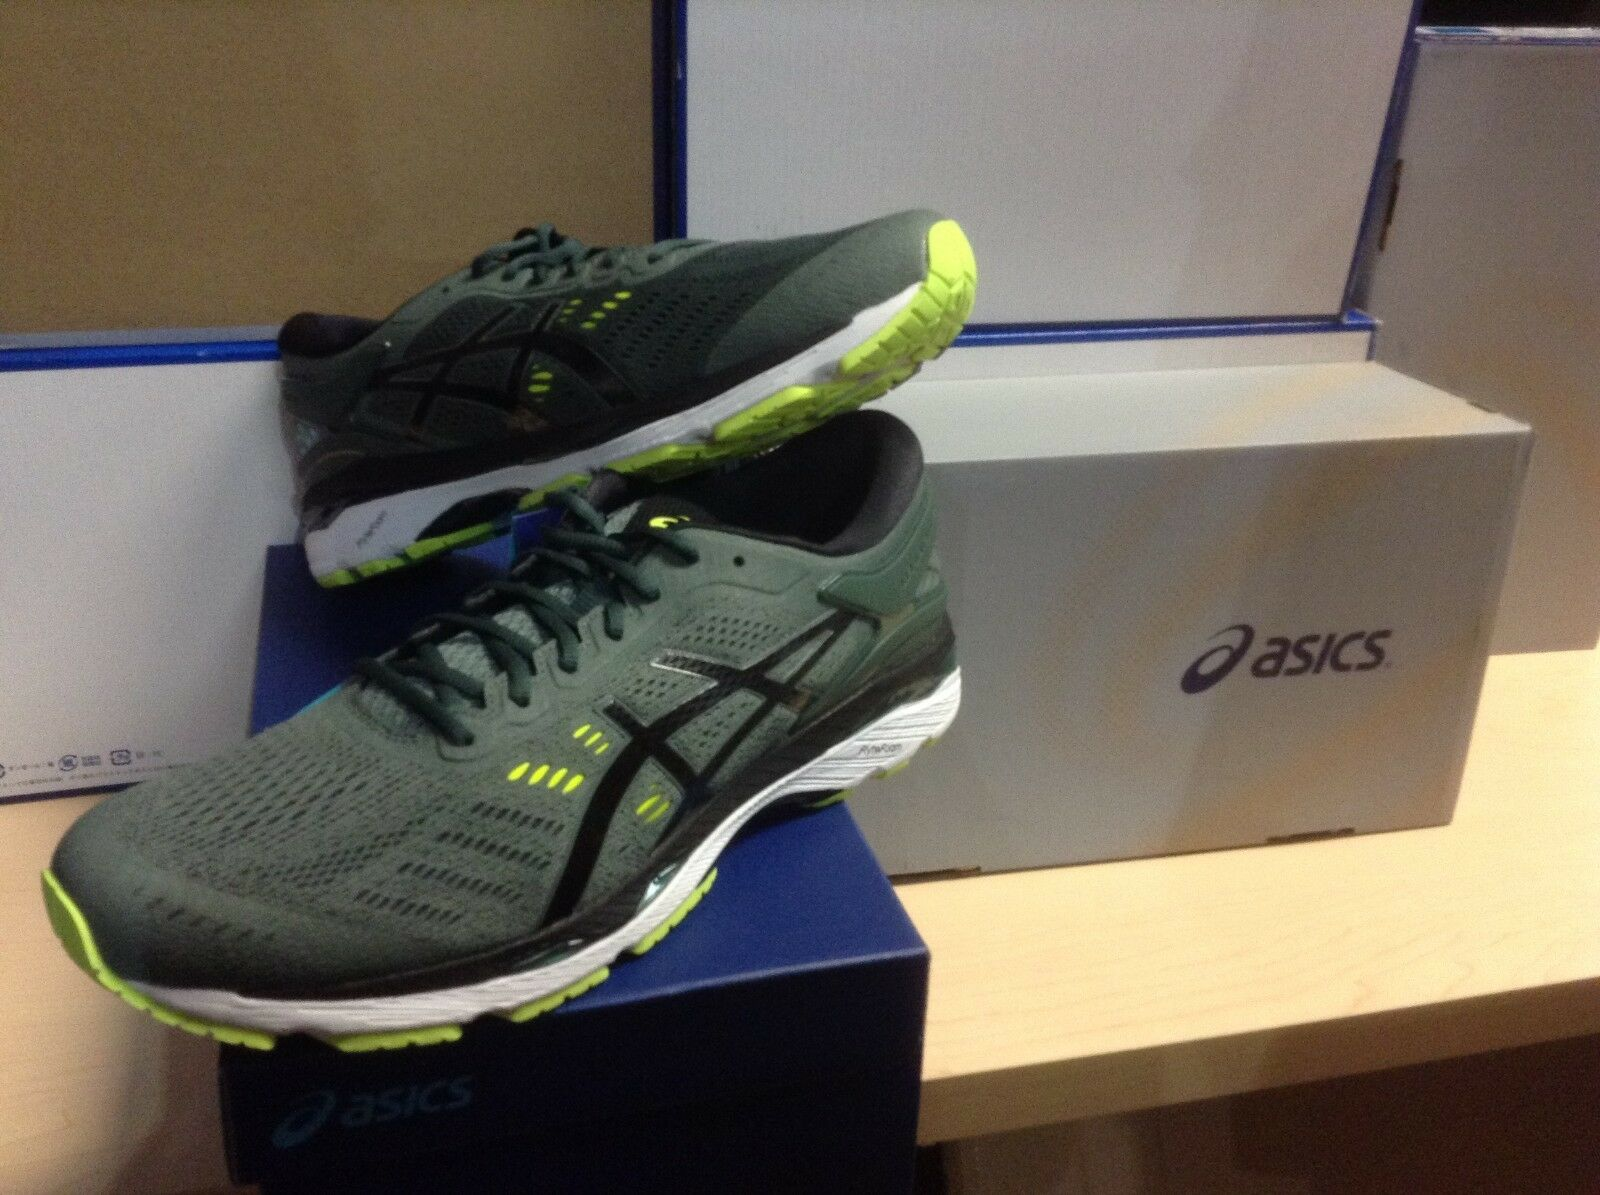 MEN'S ASICS - GEL- KAYANO 24 (T749N-8290) - SIZE 9 - 35% OFF